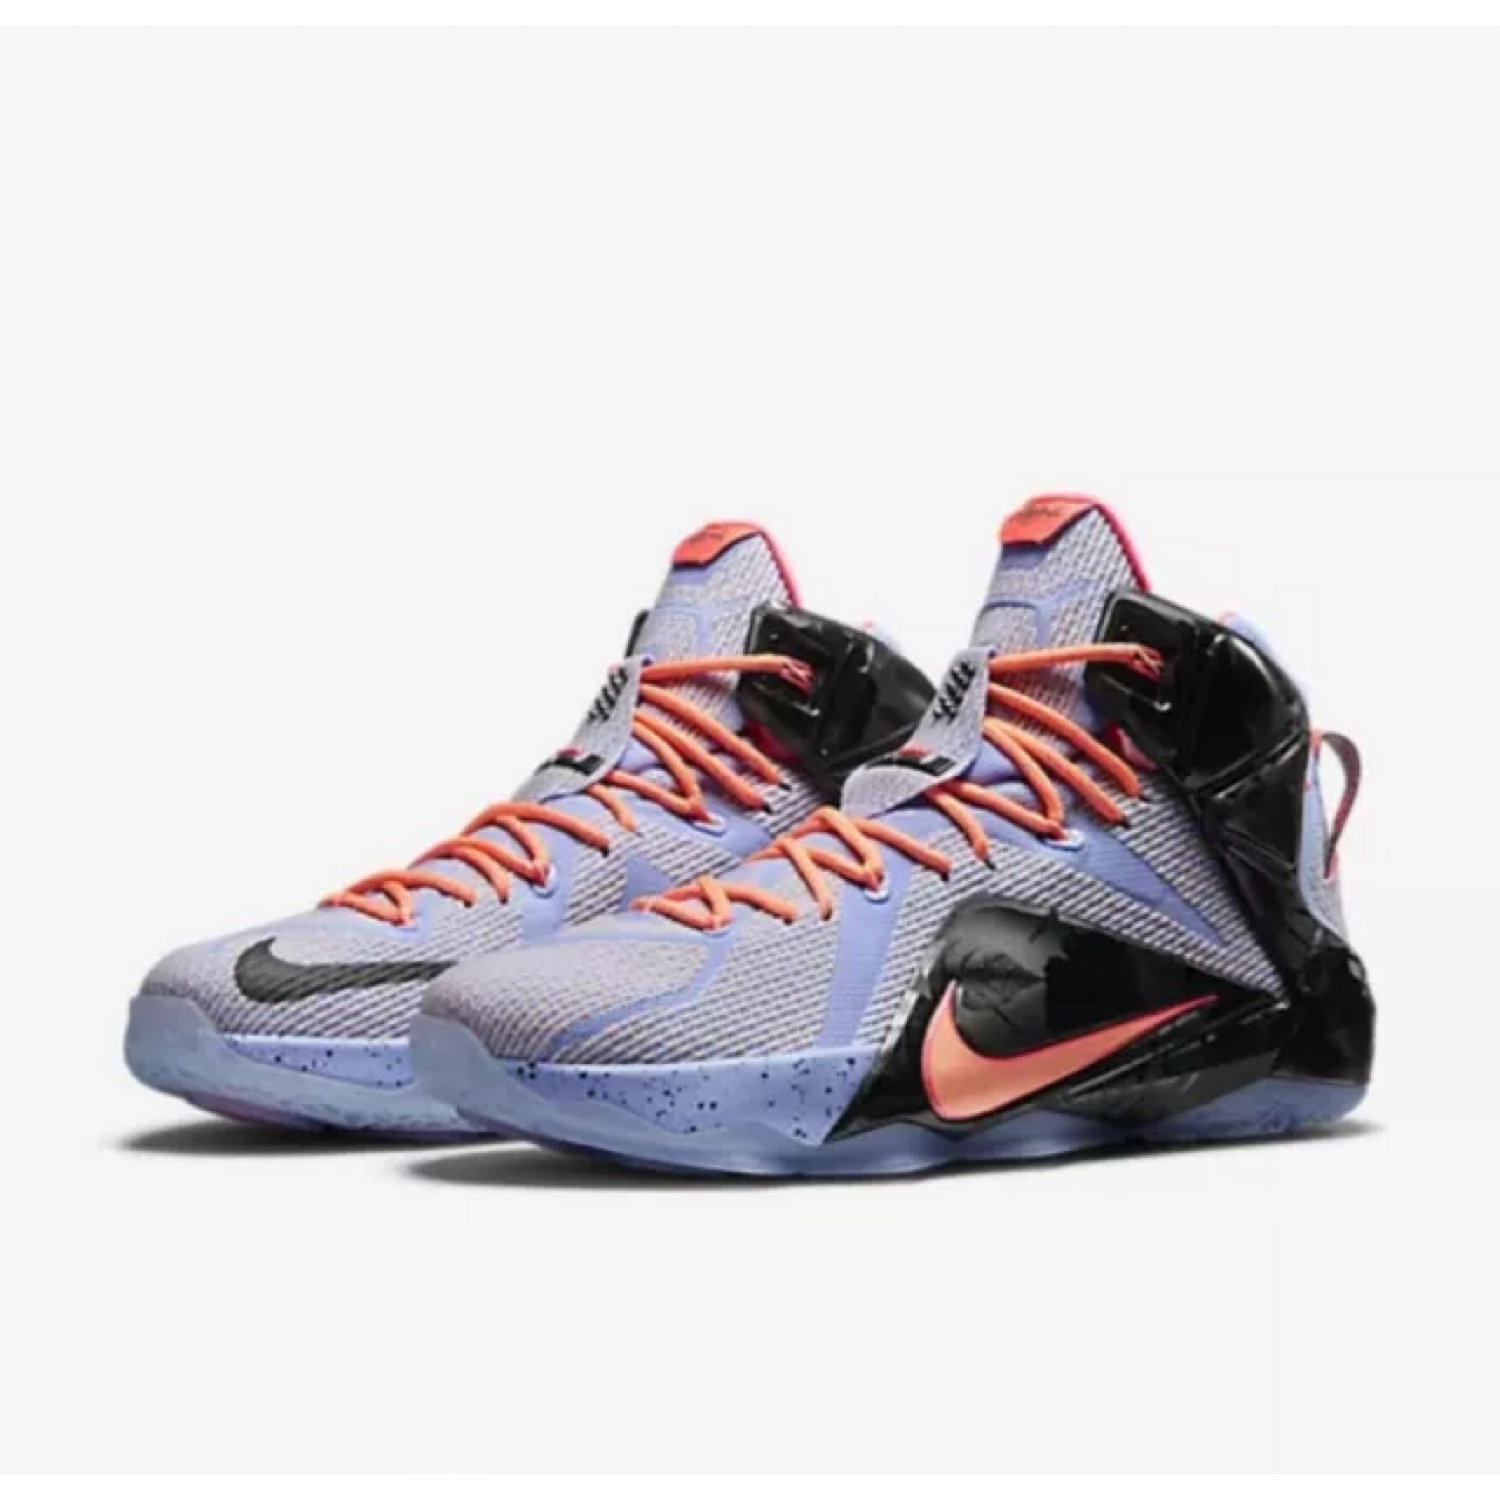 reputable site 44620 2dfc9 2014 Nike Lebron James 12 Xii Size 11 Brand New